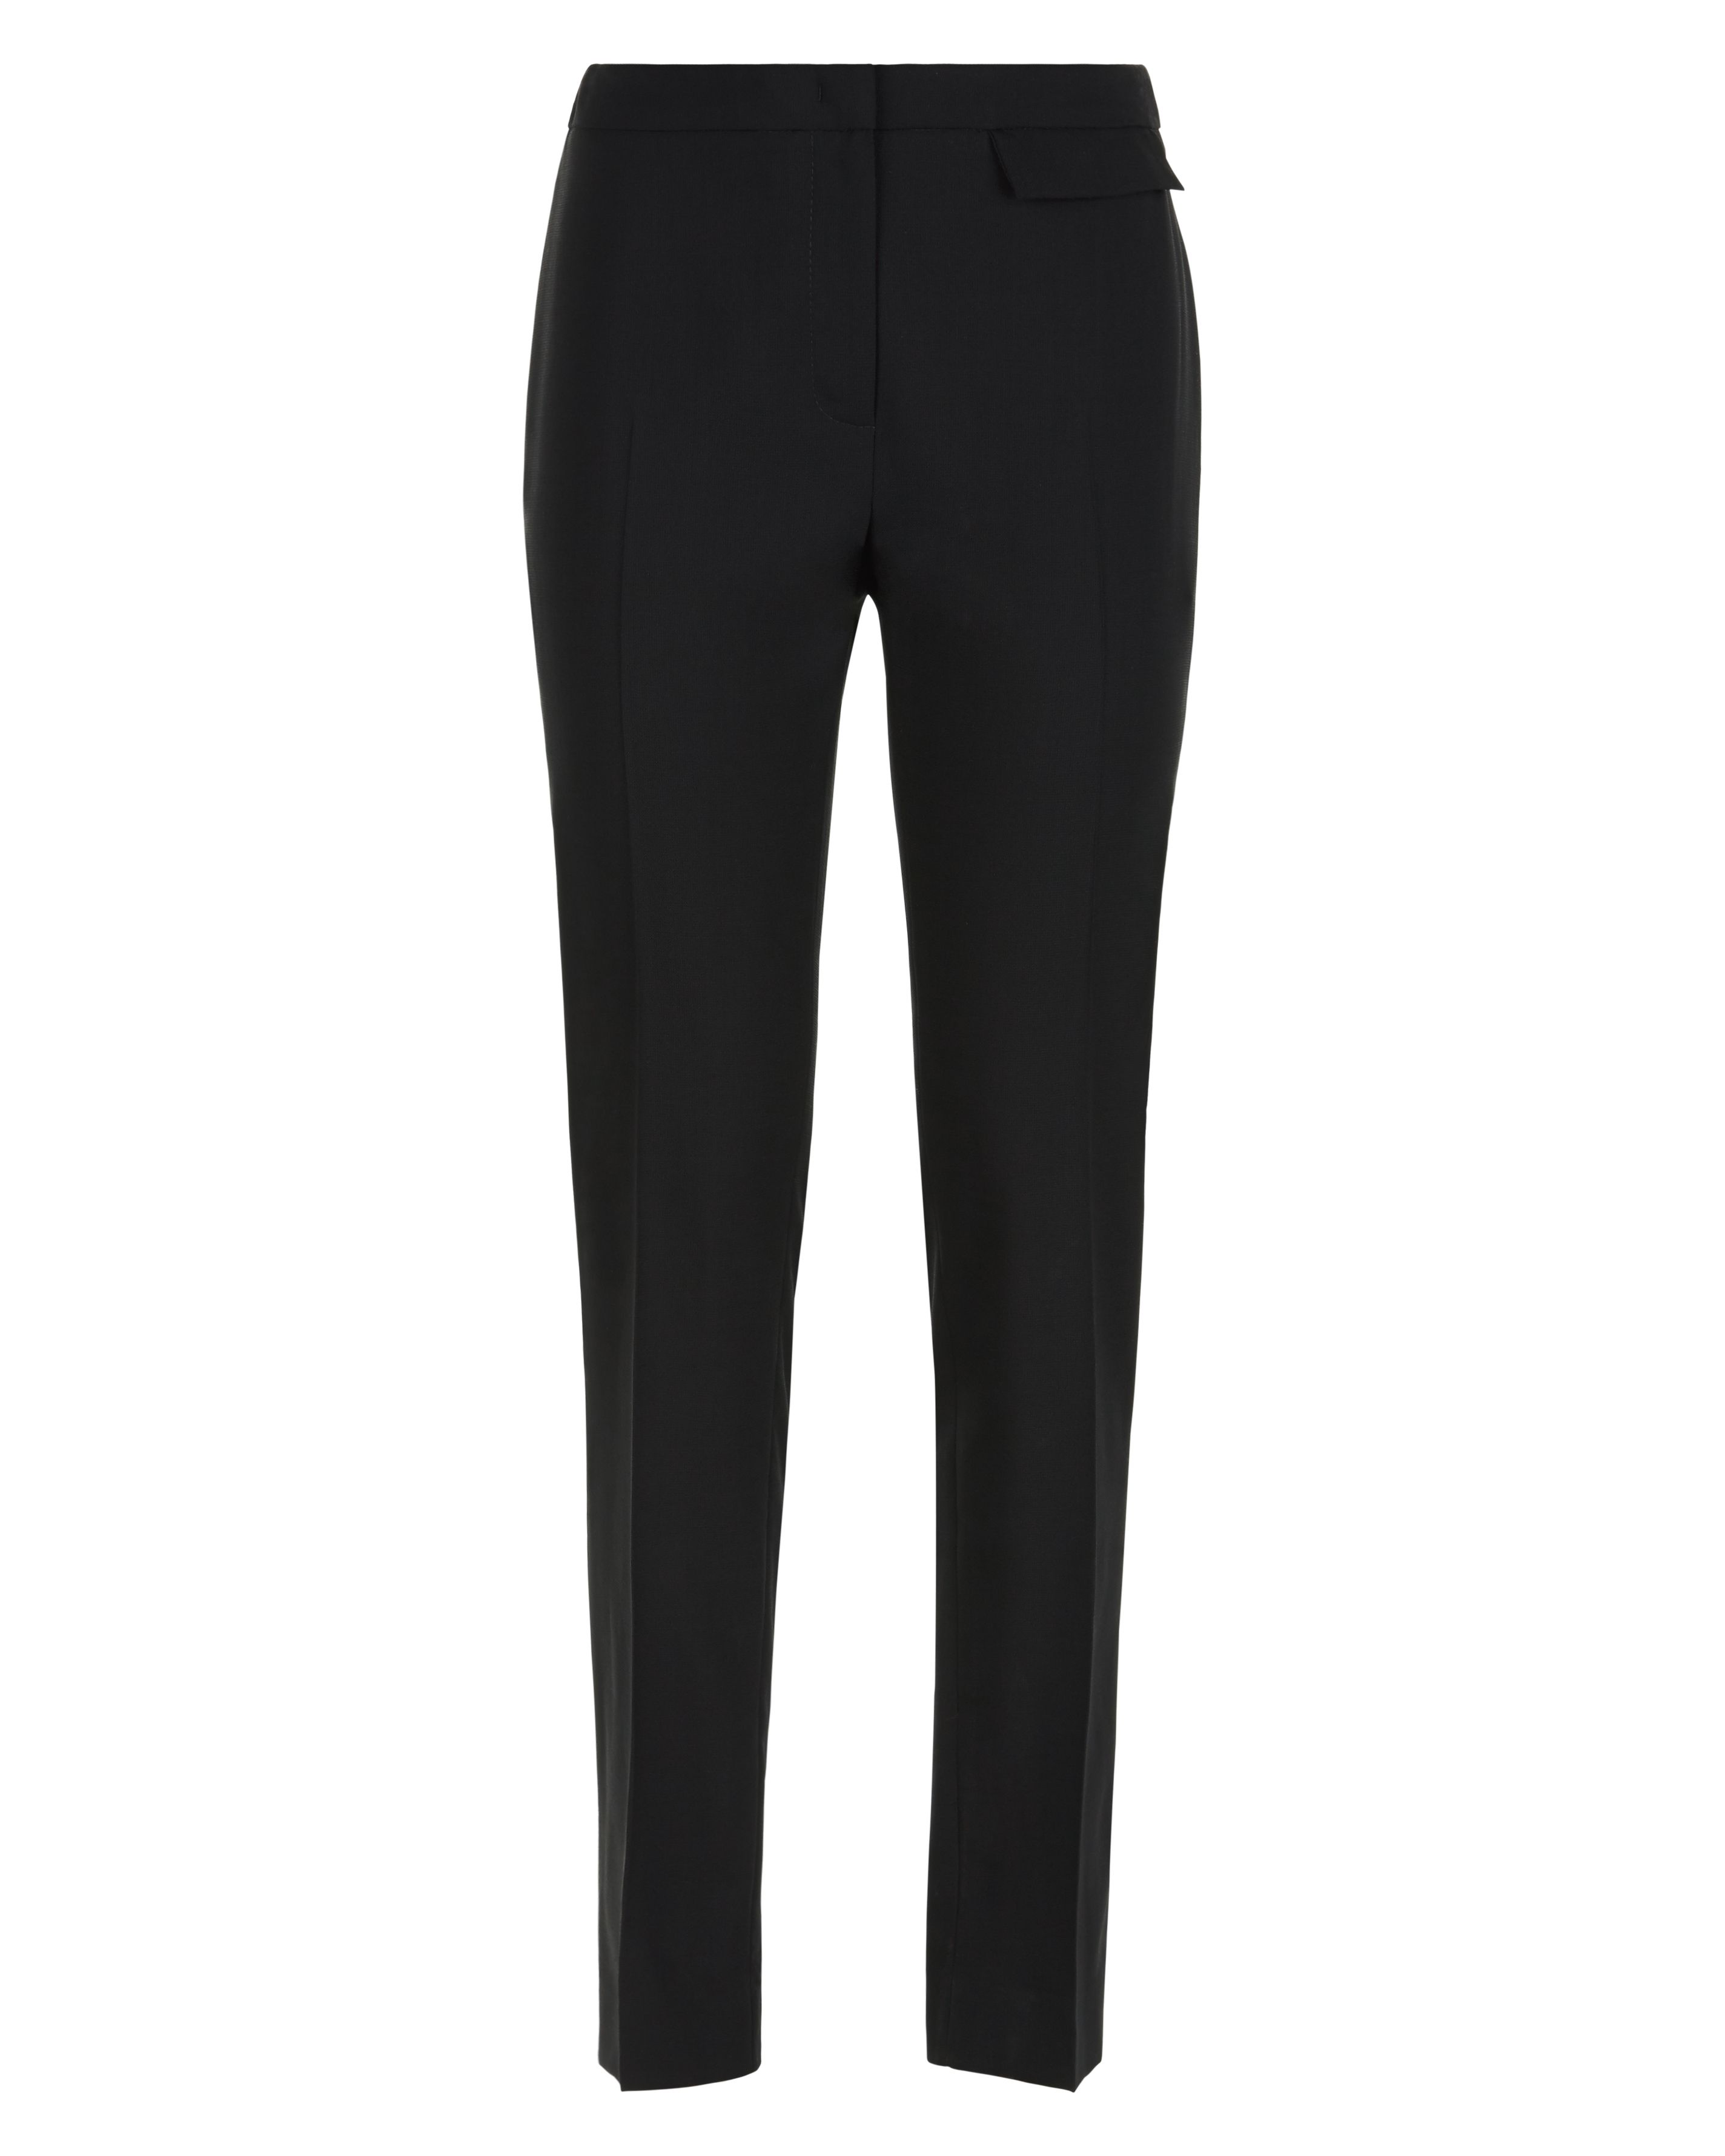 Jaeger Wool Split Detail Trousers, Black